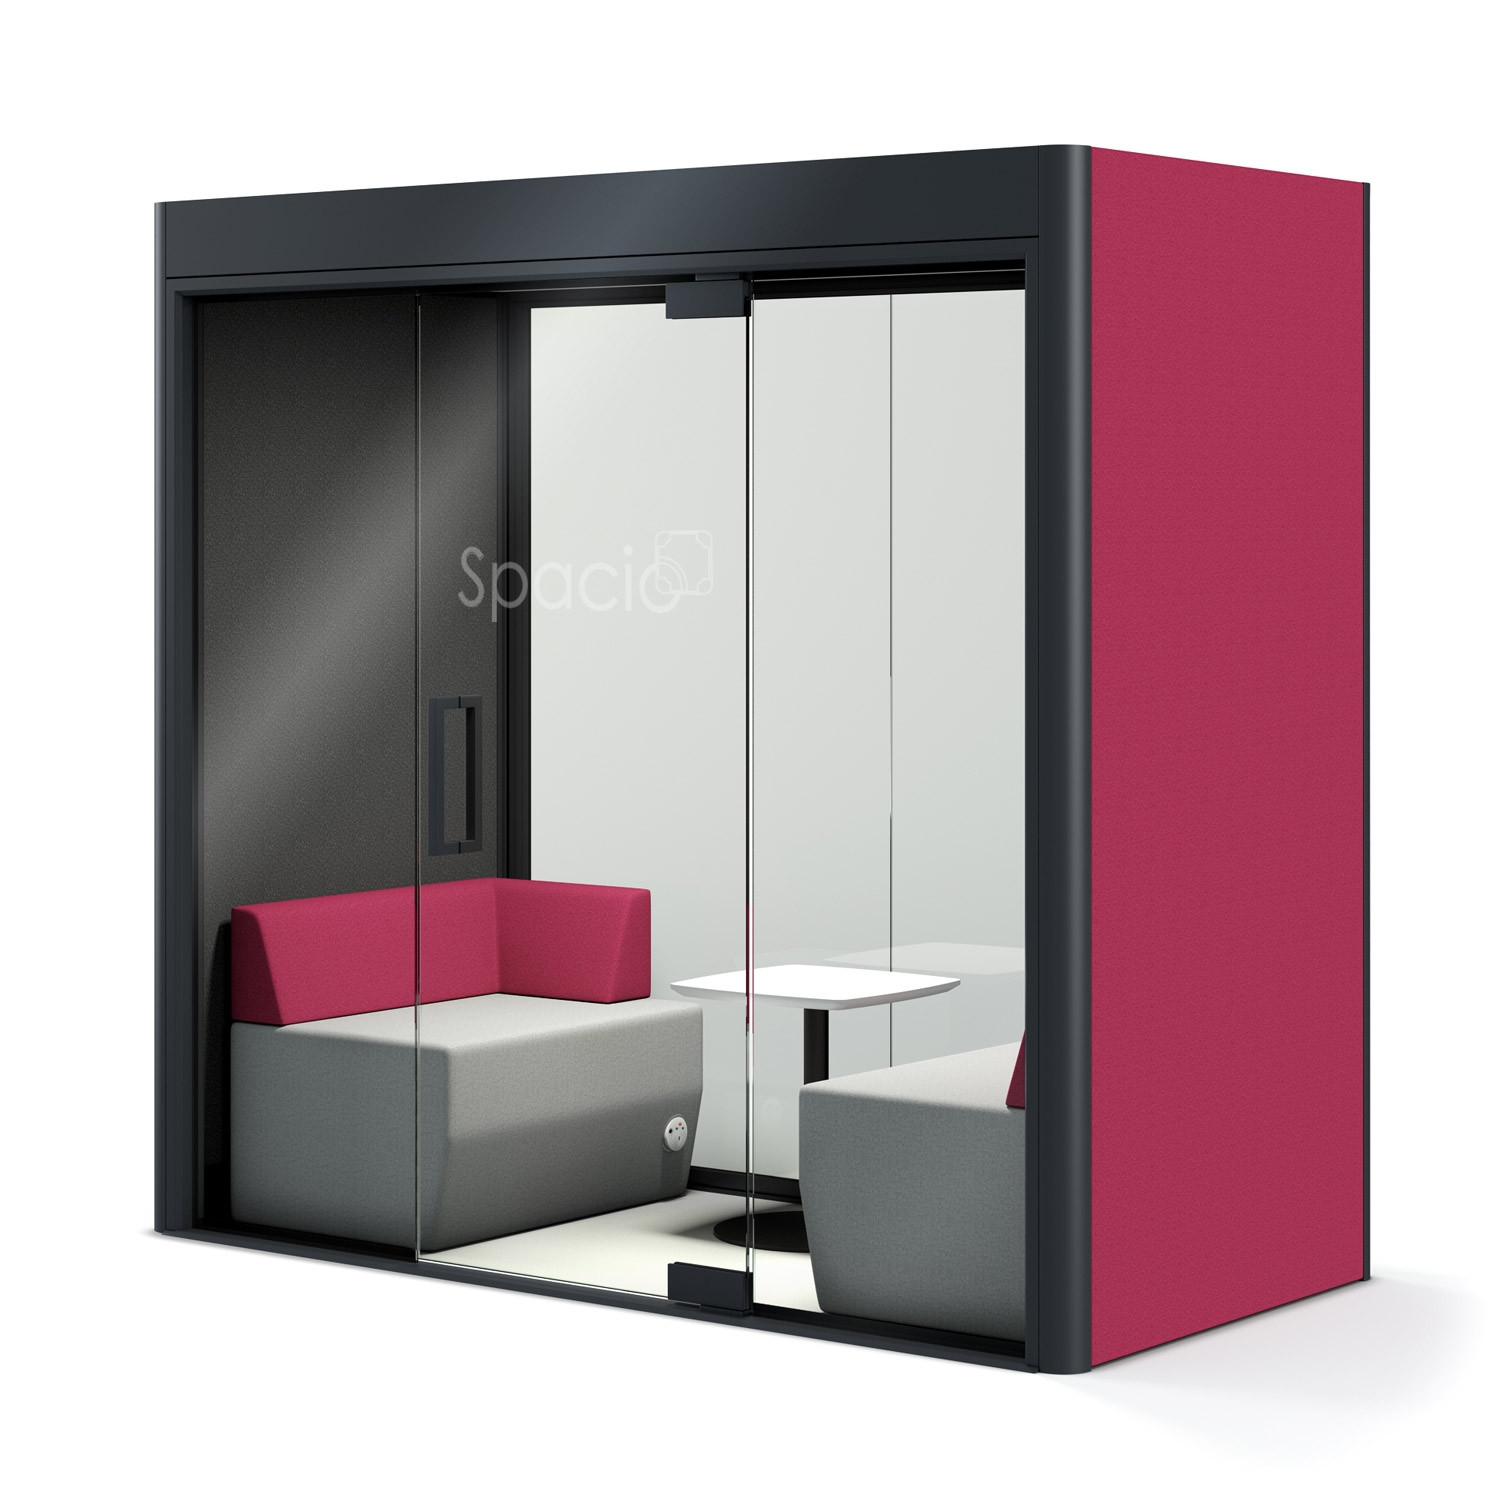 Spacio Privacy Lounge Pod black interior